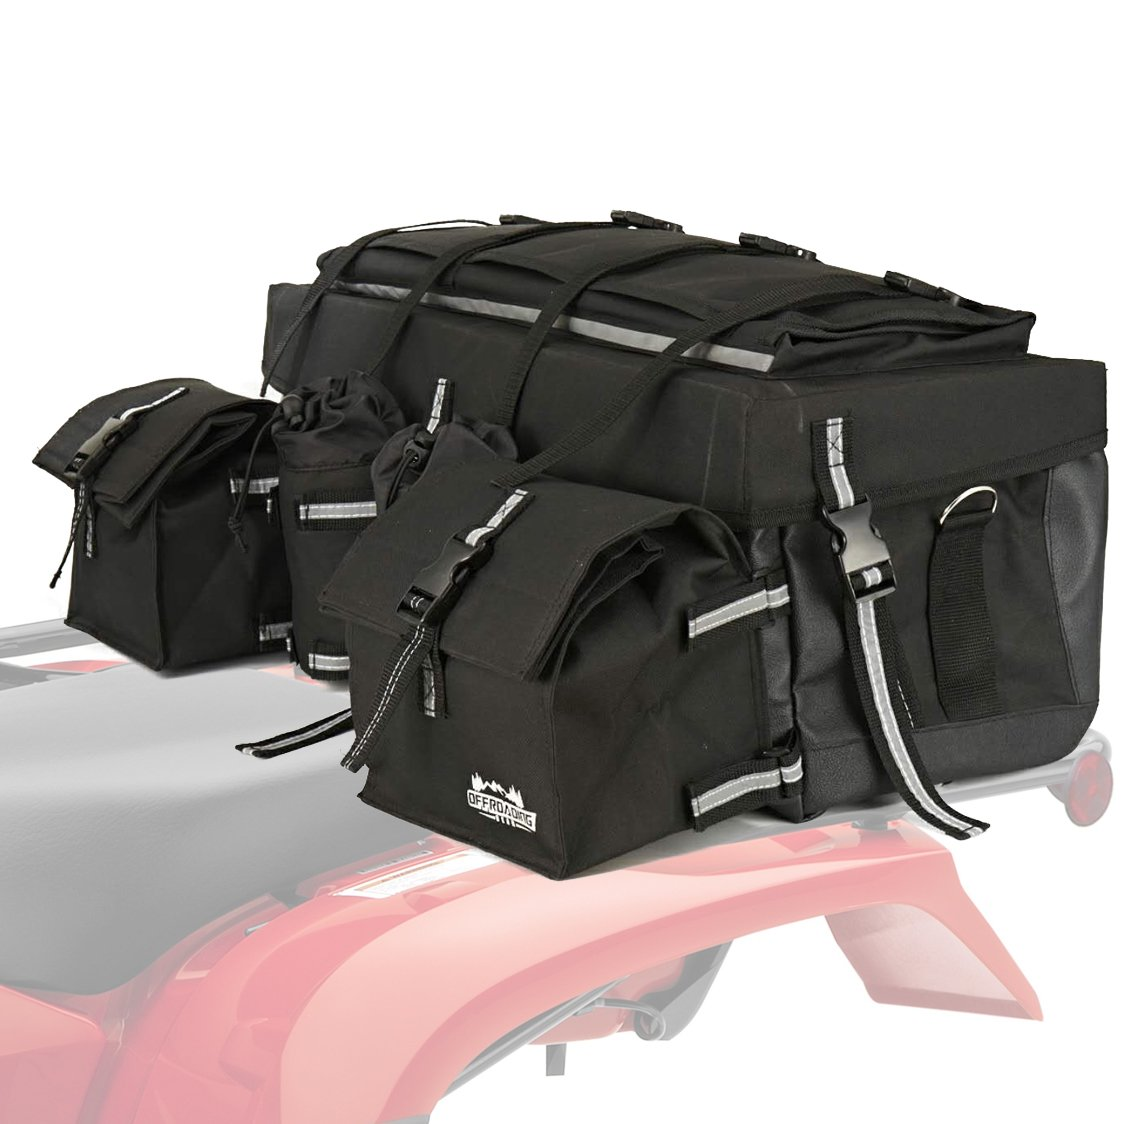 Offroading Gear ATV/Quad Rear Rack Bag with Rain Cover and Insulated Cooler Bags, Black